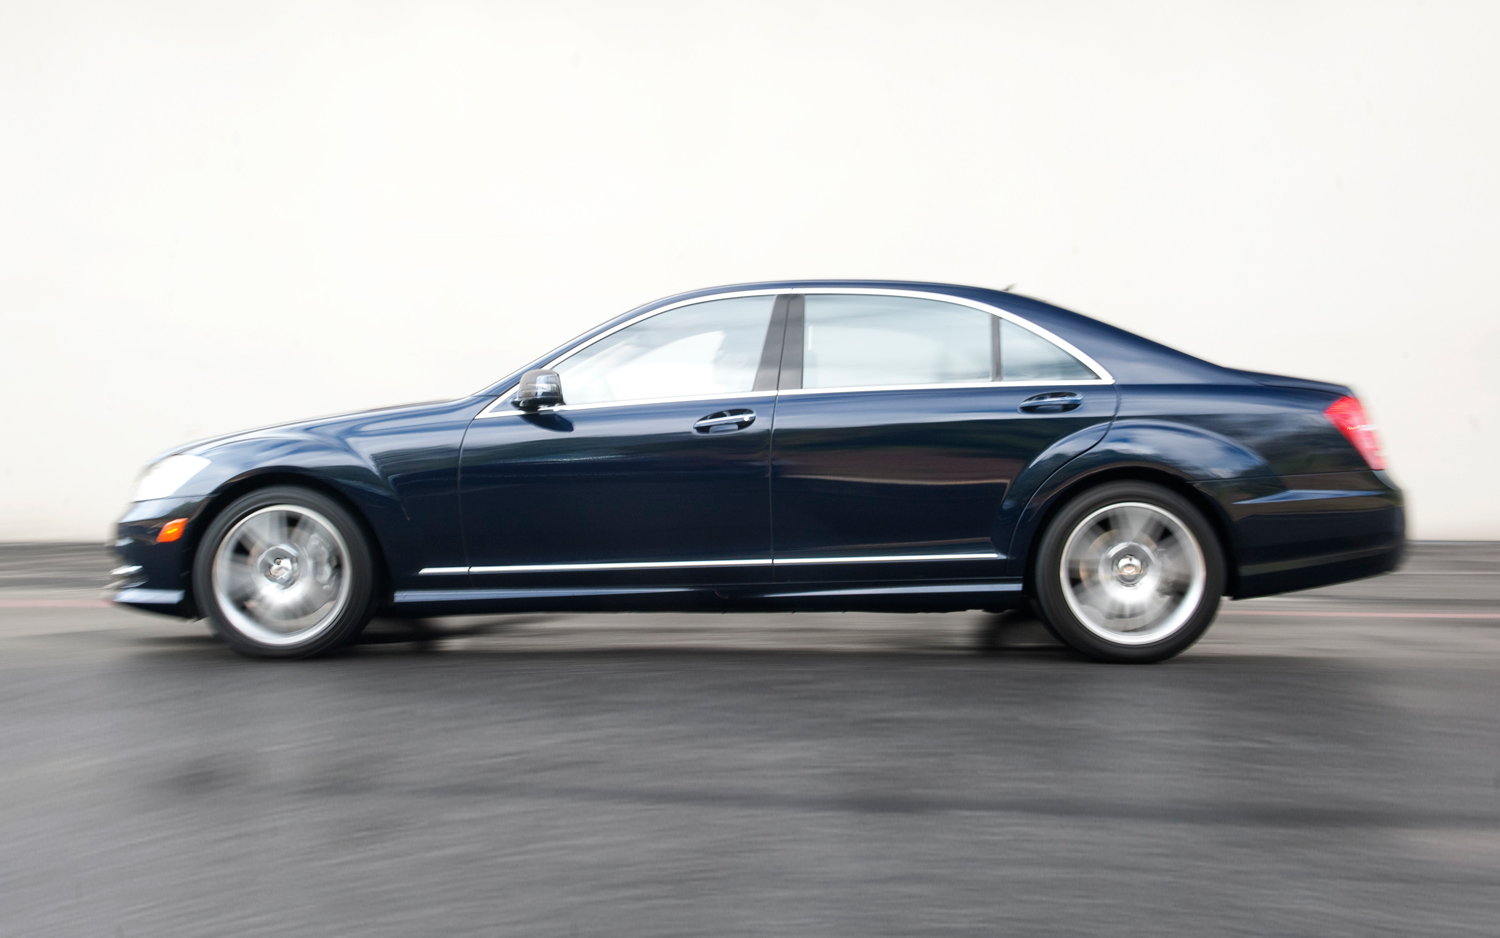 Mercedes-benz s400 photo - 9